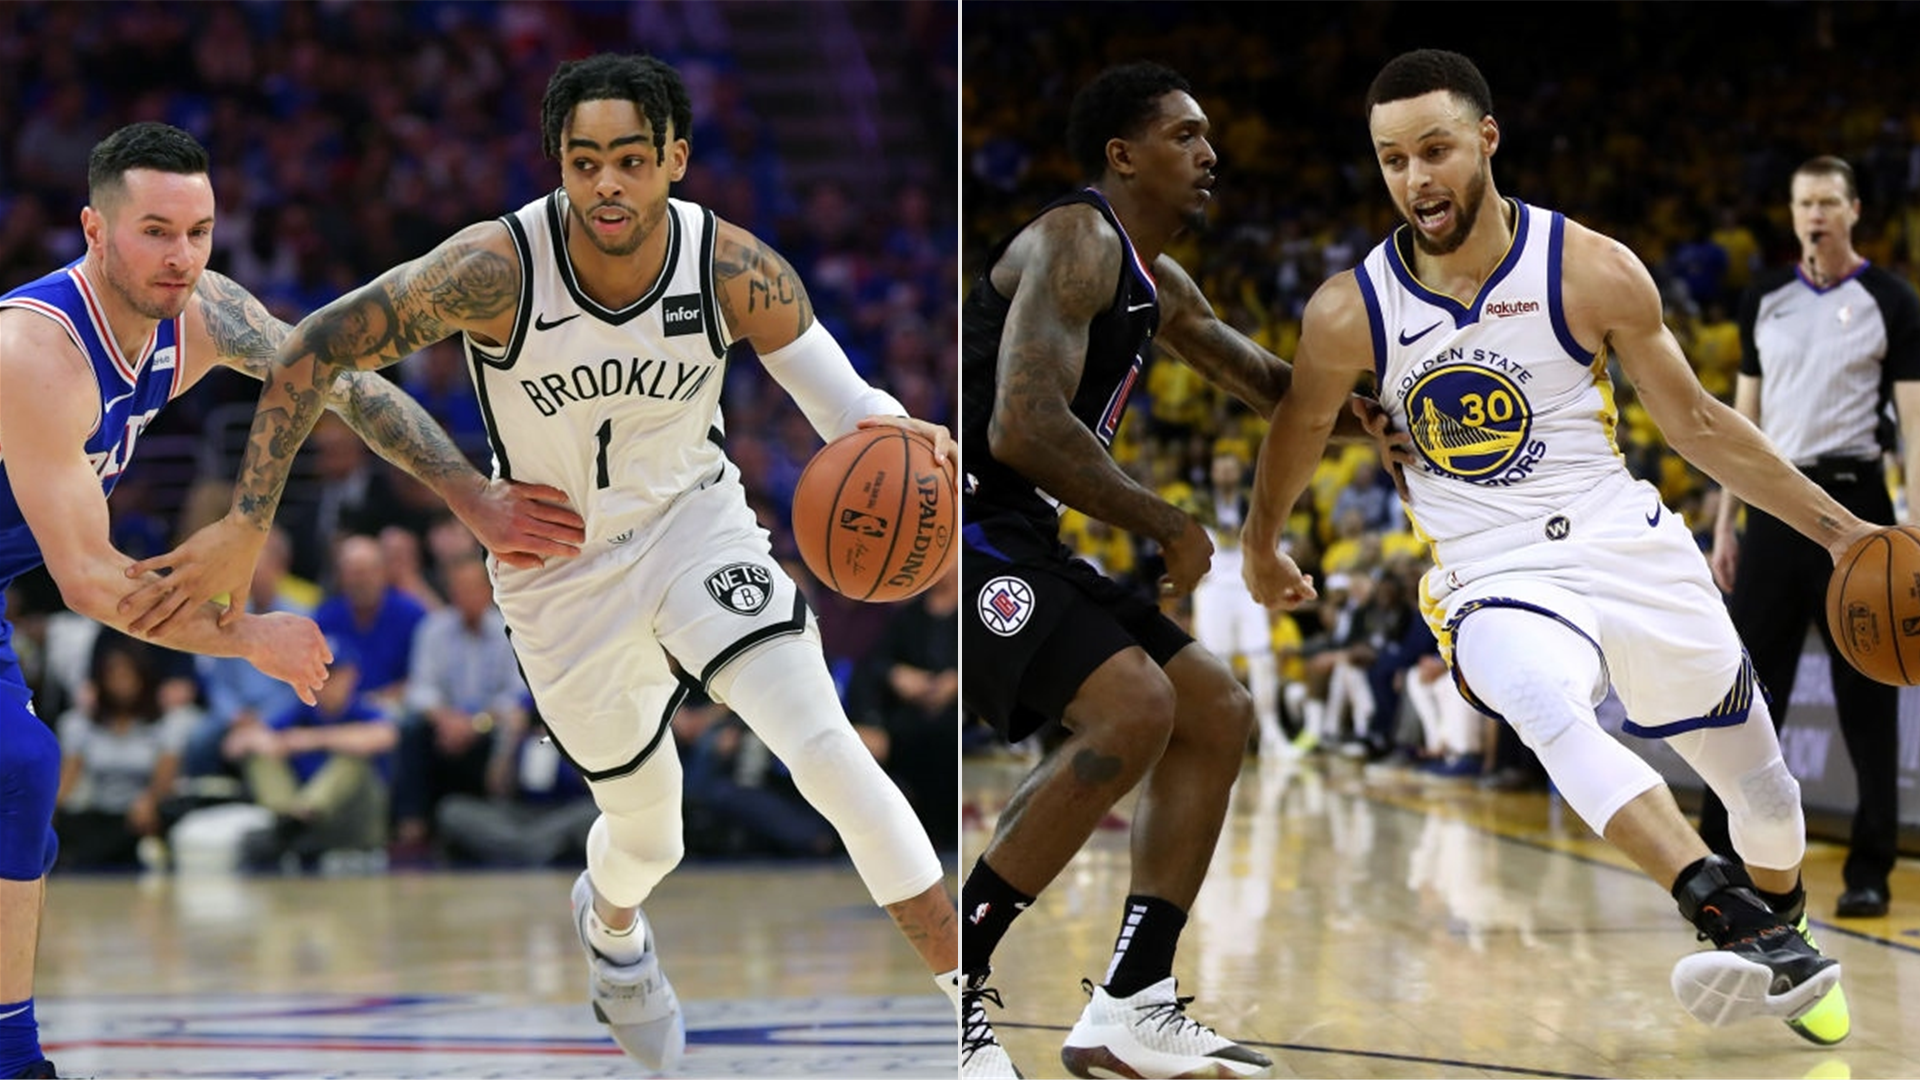 Nba Playoffs 2019 Five Things To Watch In Game 2 Of 76ers